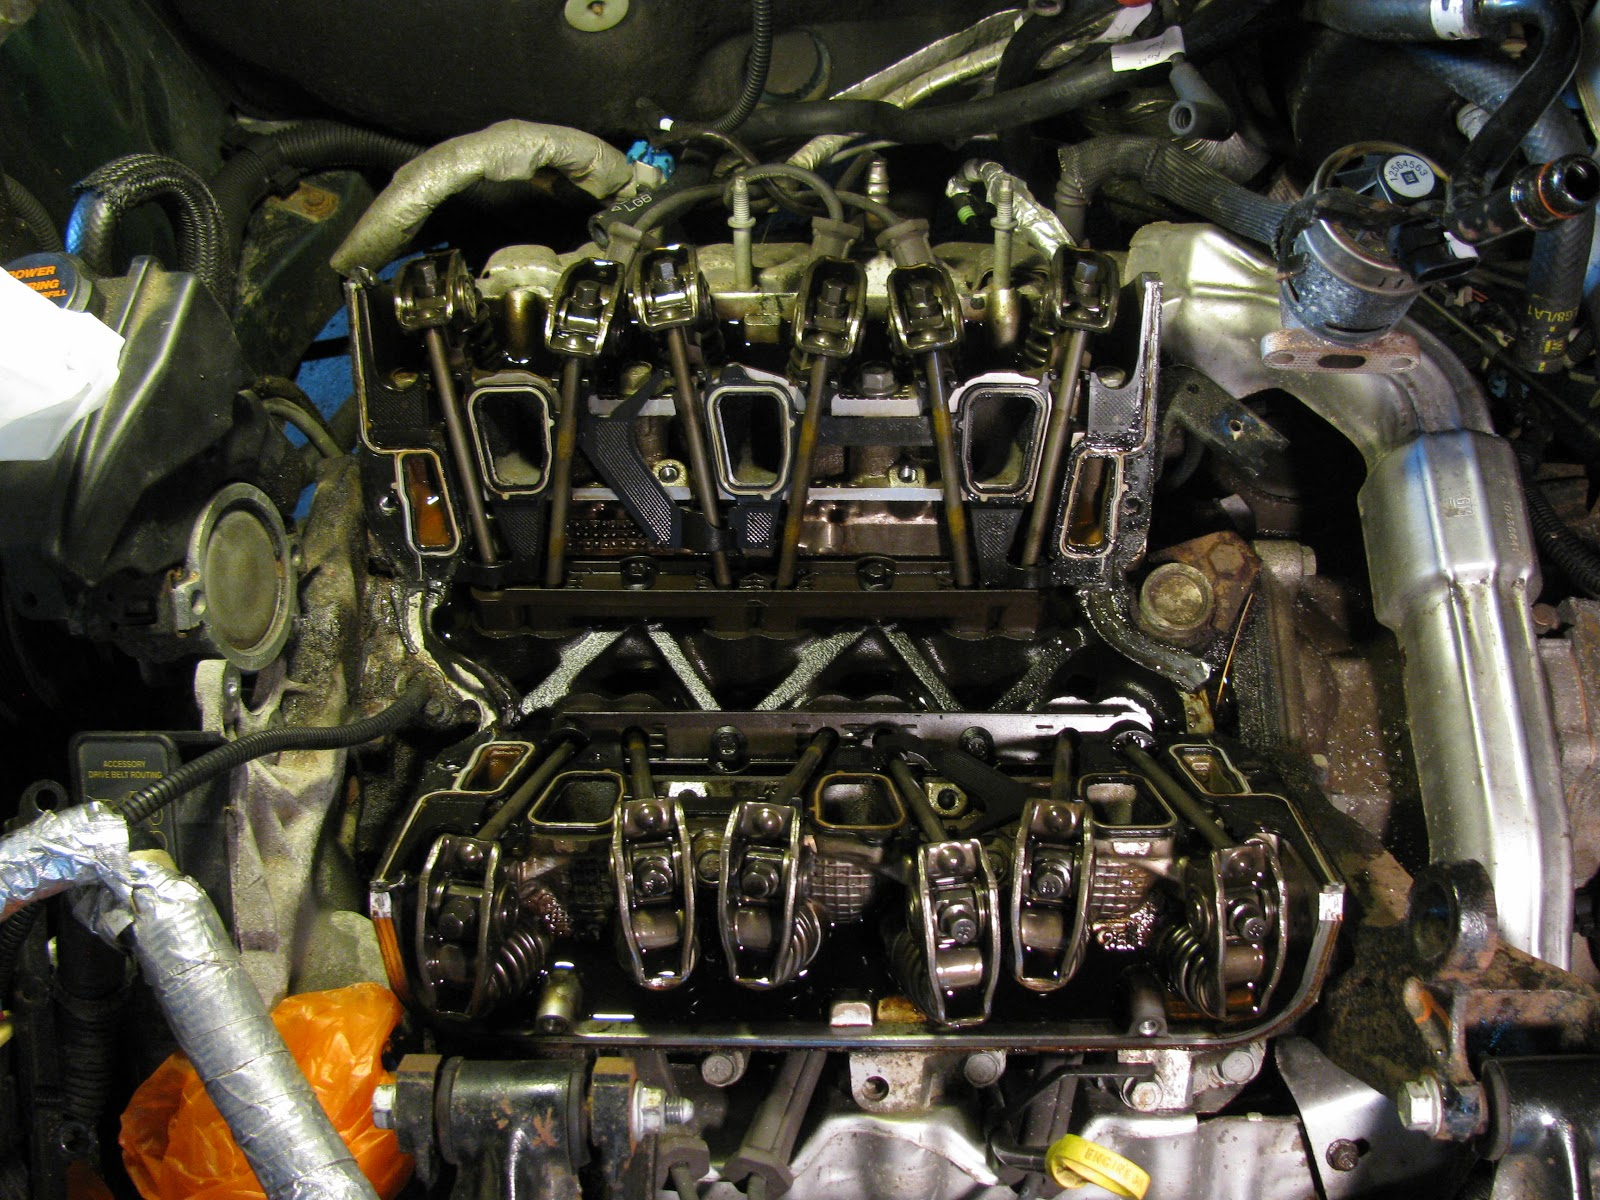 The Original Mechanic 31l Engine Gm Replacing Intake Manifold Ls Cooling Diagram View Of 31 With Lower Removed